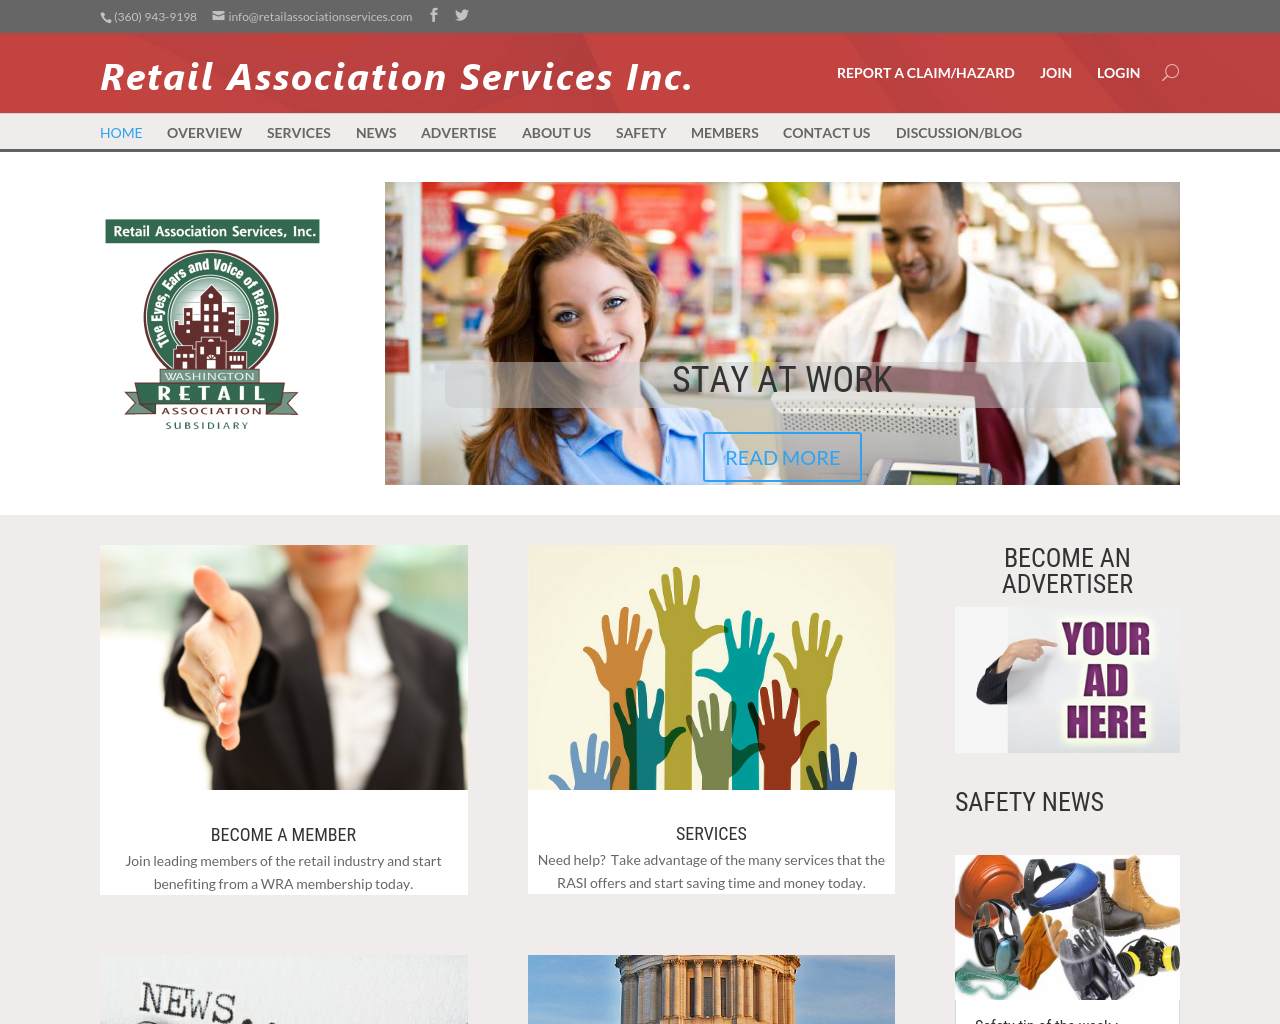 Retail-Association-Services-Inc.-Advertising-Reviews-Pricing